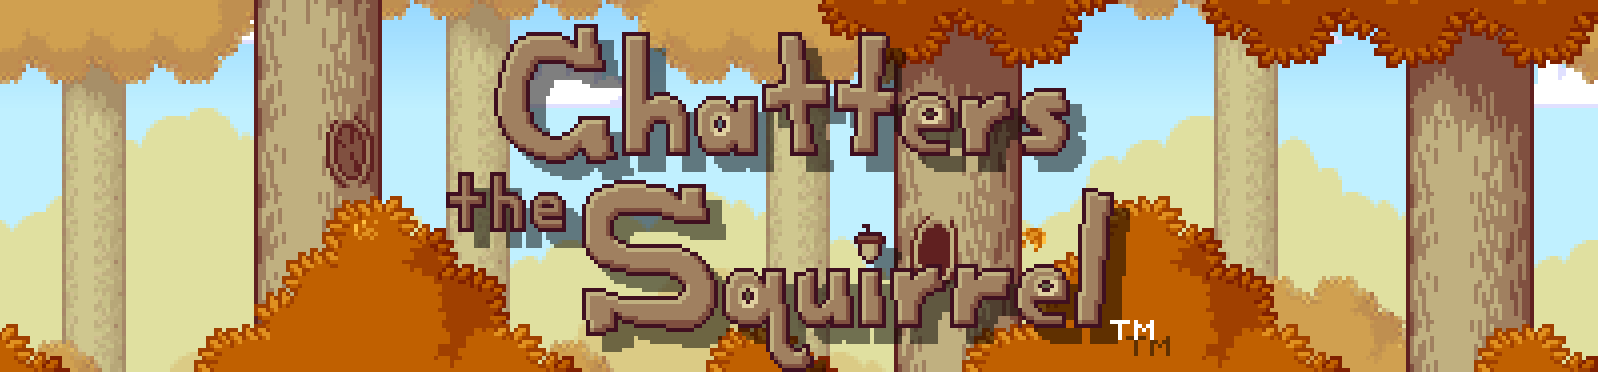 Chatters the Squirrel DEMO